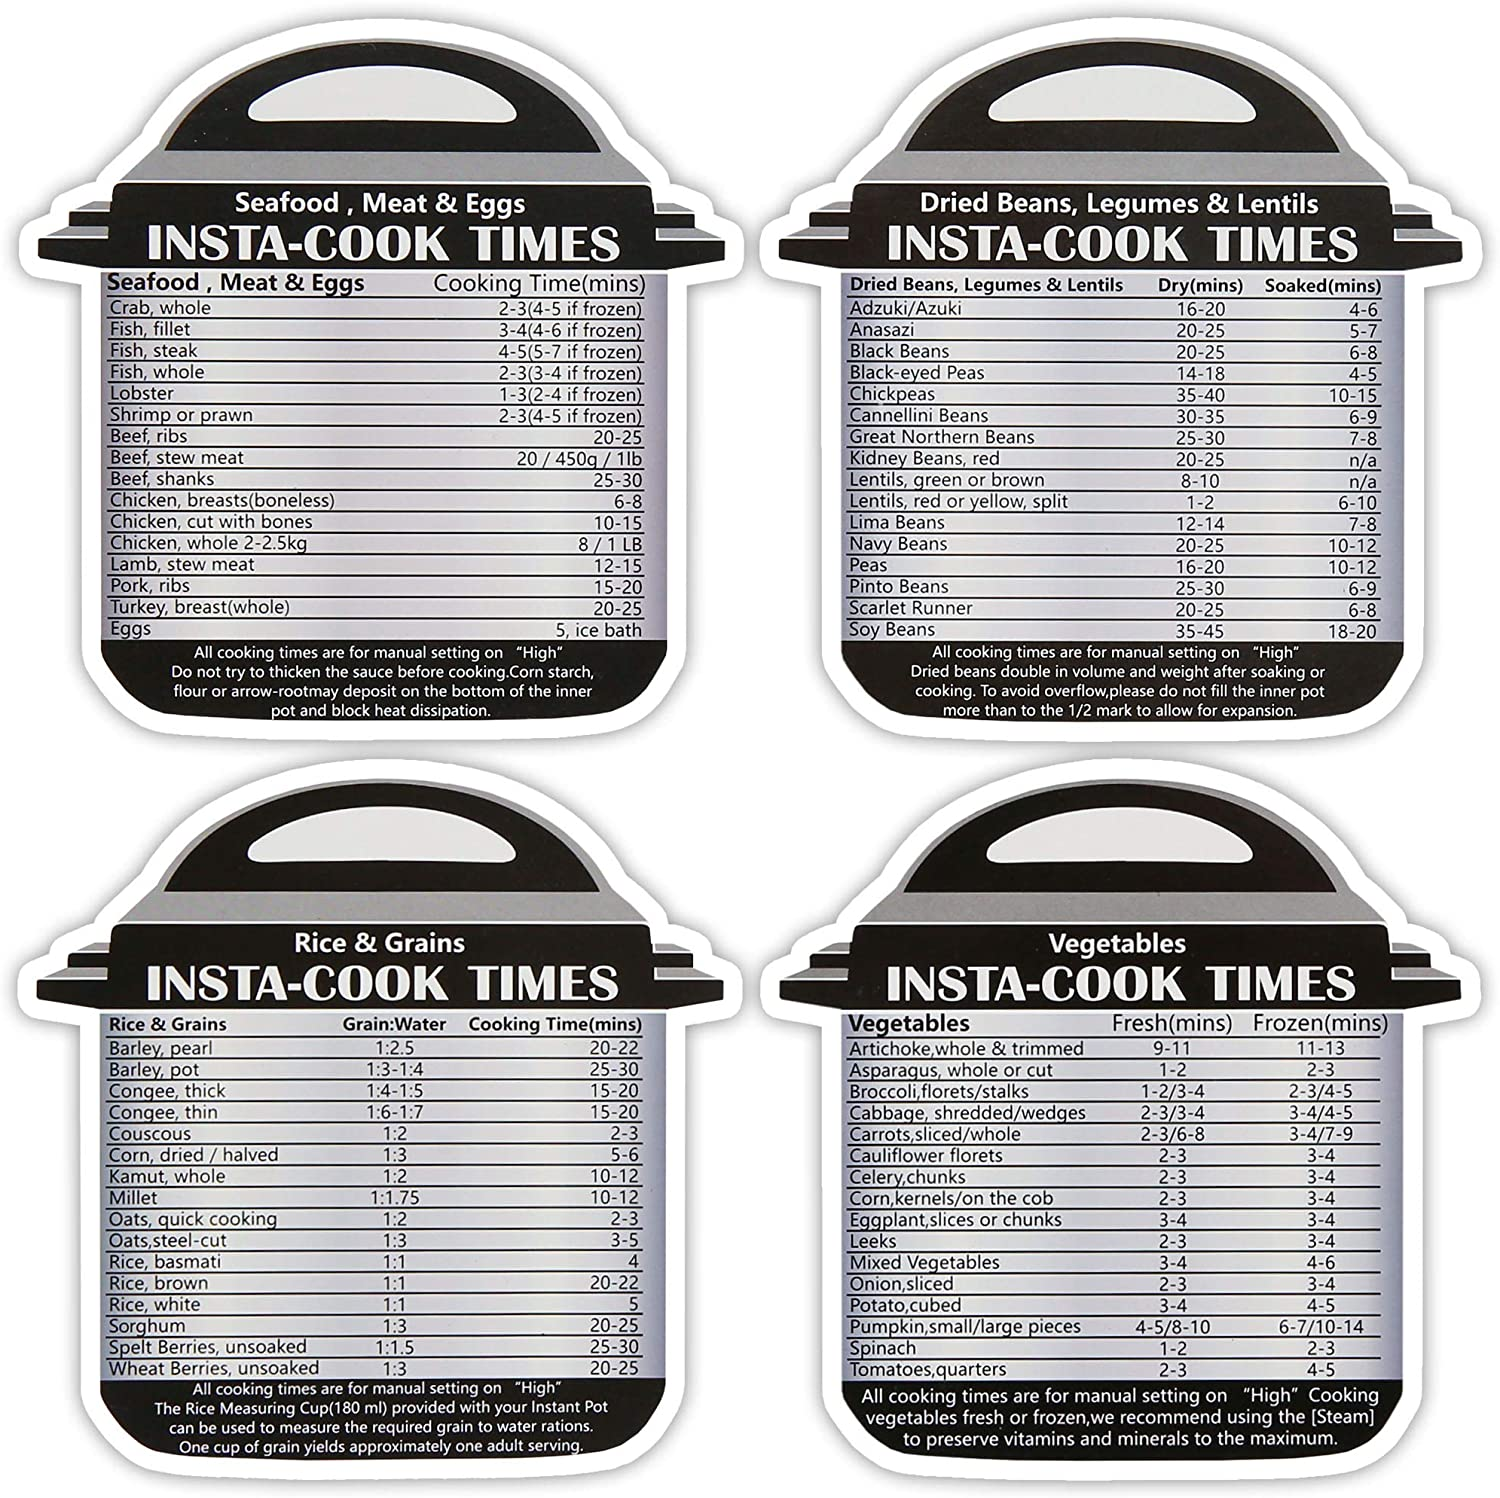 Komfyko 4 pack Magnetic Cheat Sheet for Pressure cooker - Easy to Read Quick Reference Guide. Compatible with Instant Pot. Compact Design with Cooking Times for Meats, Veggies. Waterproof, Easy Clean.